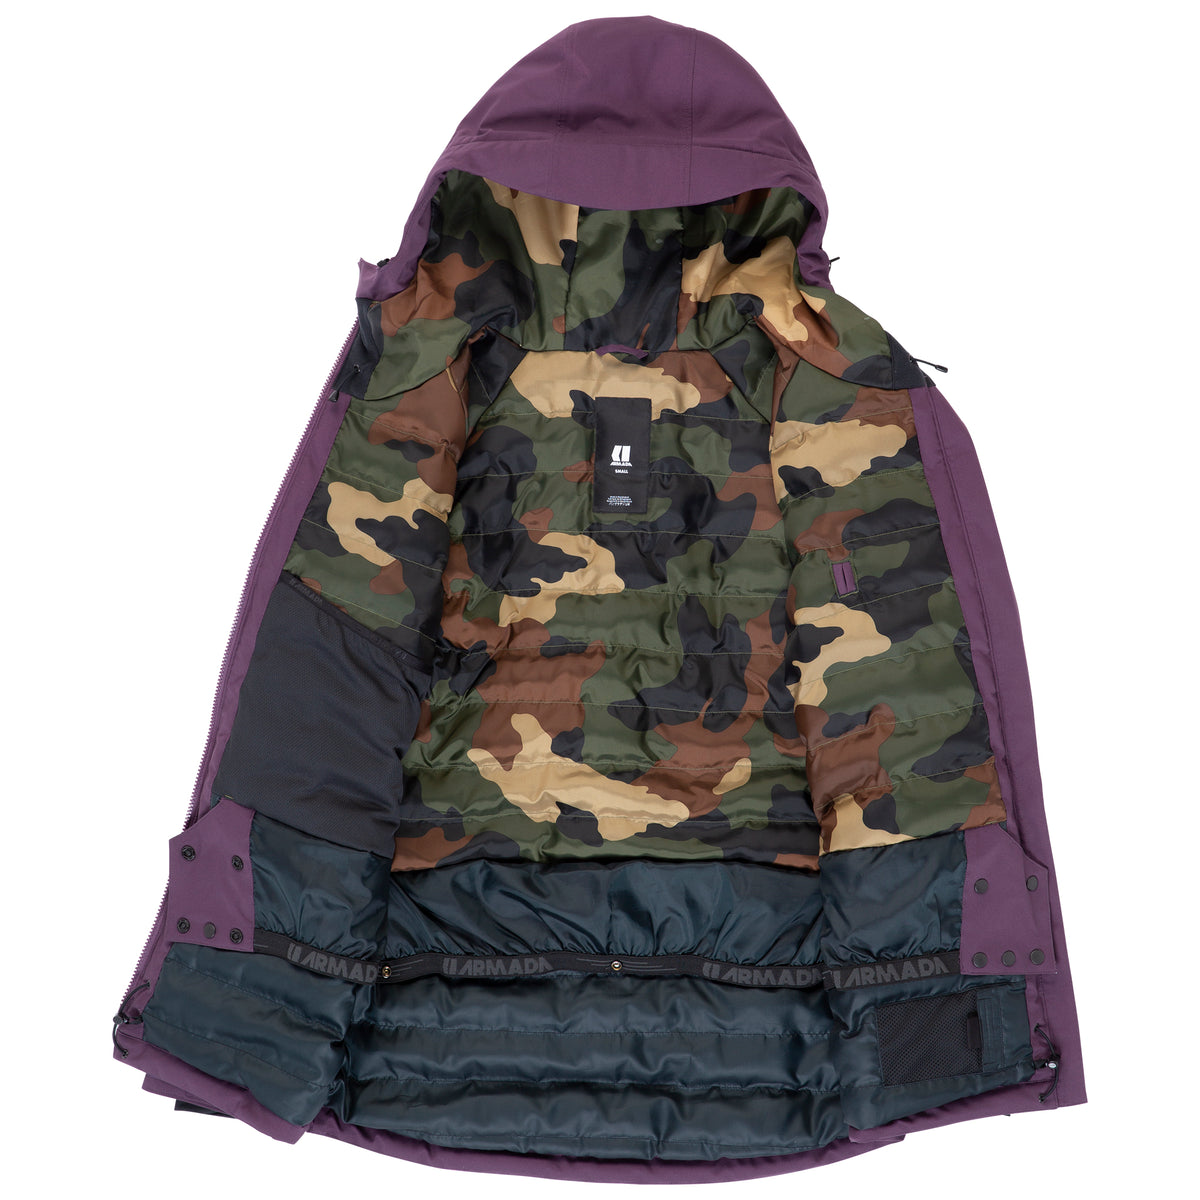 Armada Barrena Insulated Jacket